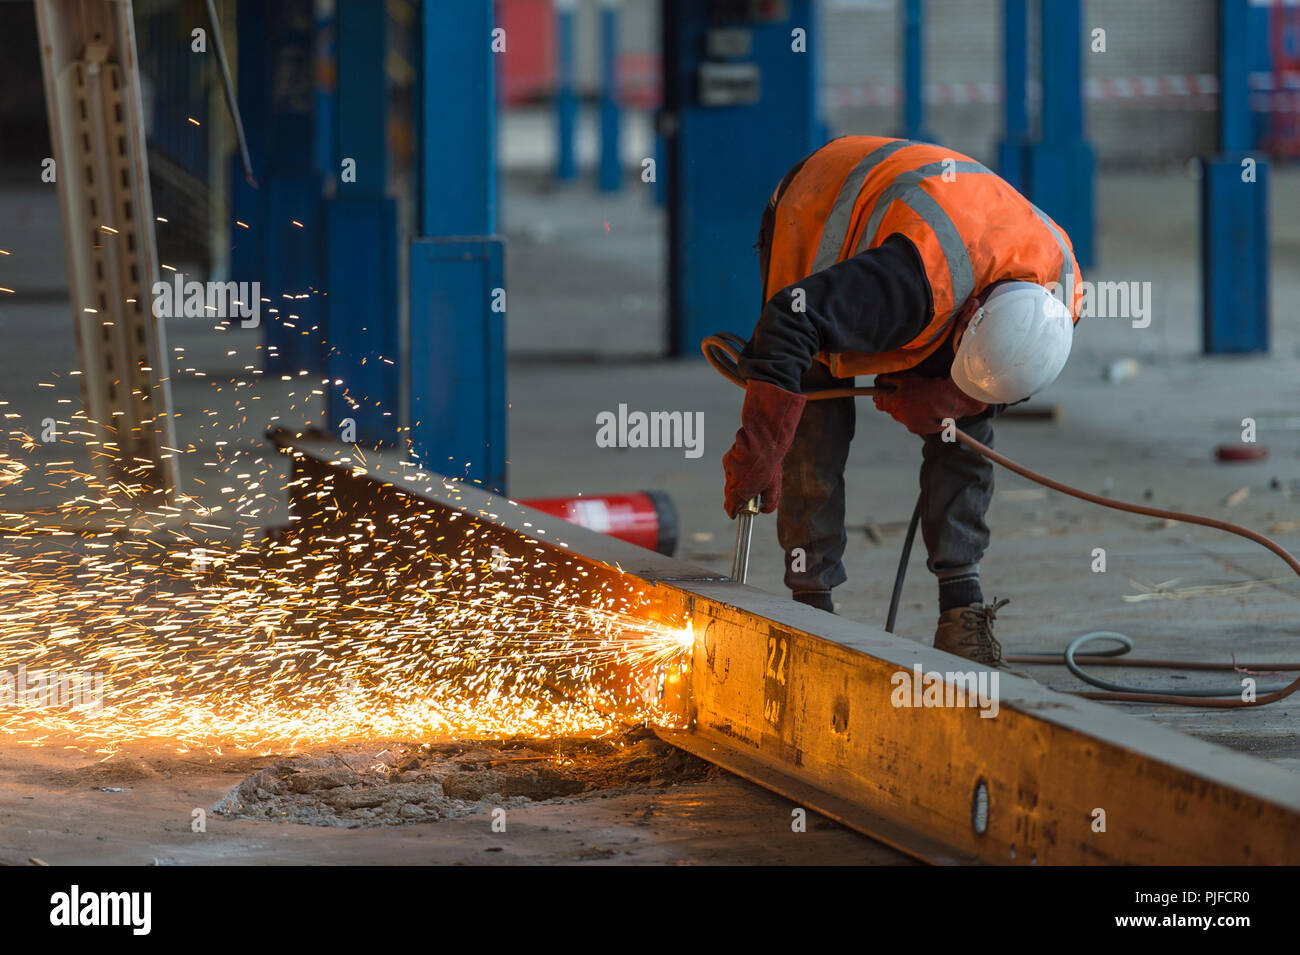 Building site worker cutting a beam with an acetylene torch - Stock Image